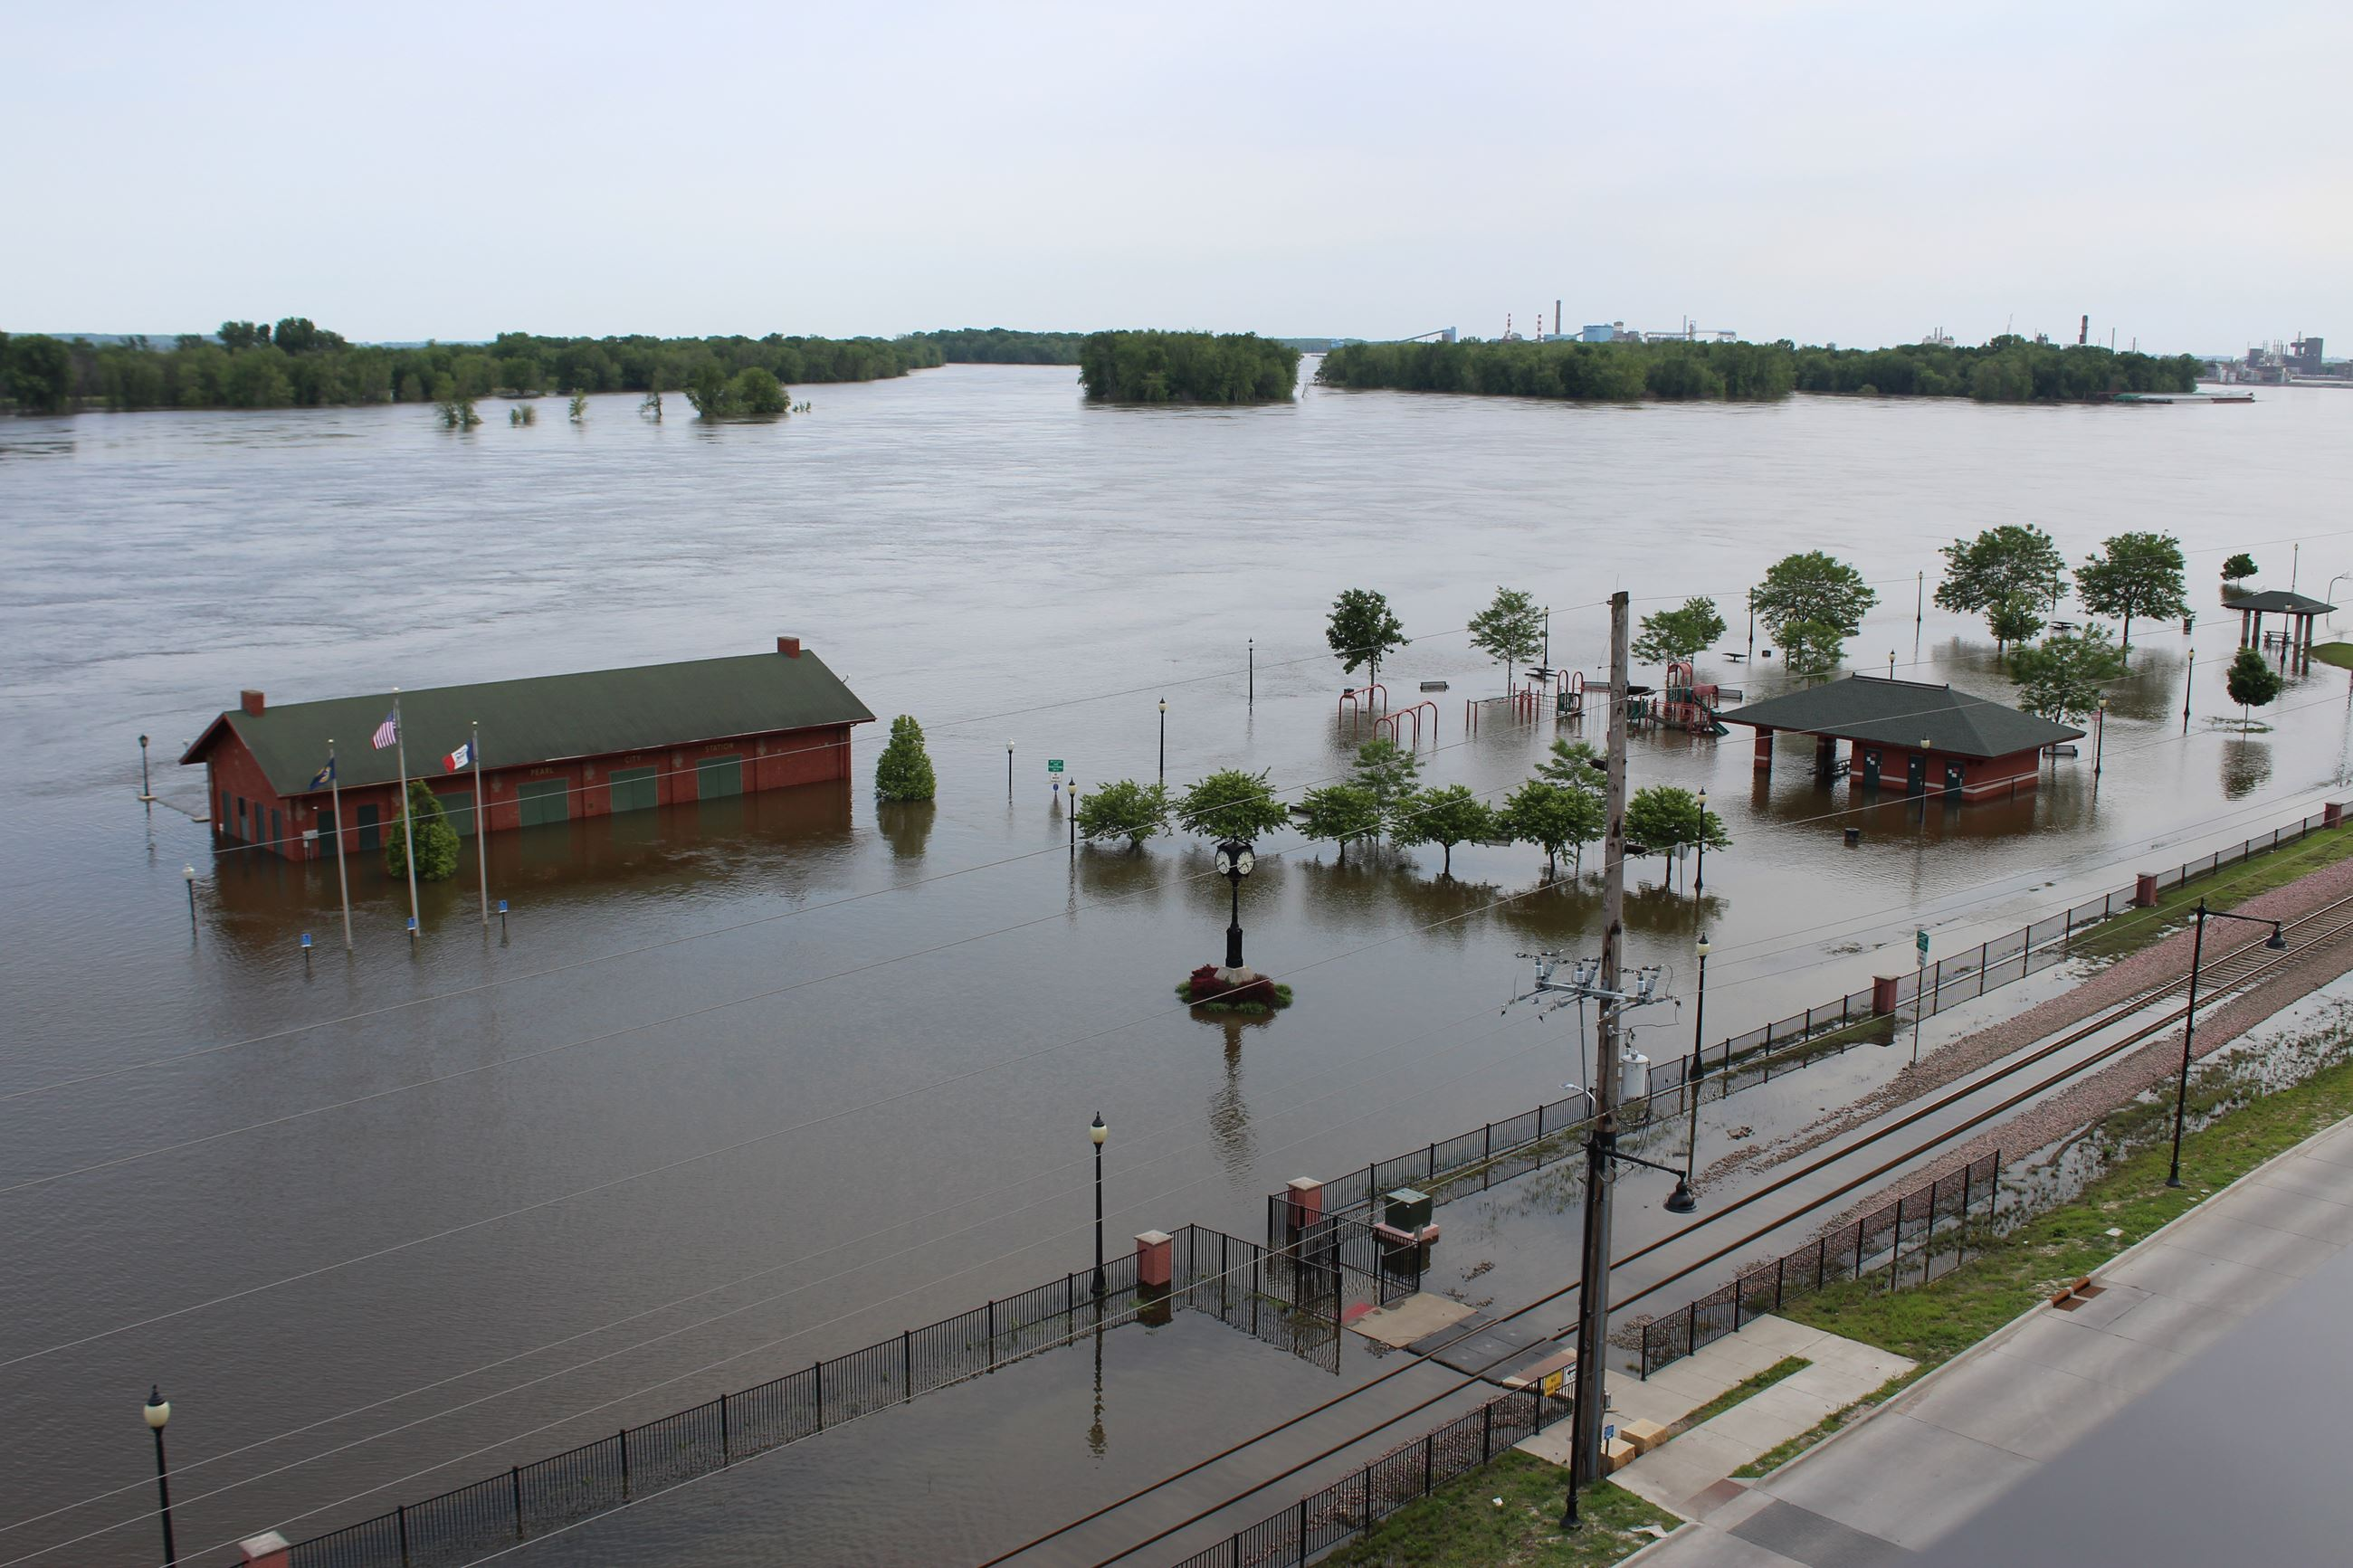 Flooded Riverside Park 001 June 03, 2019 (JPG)